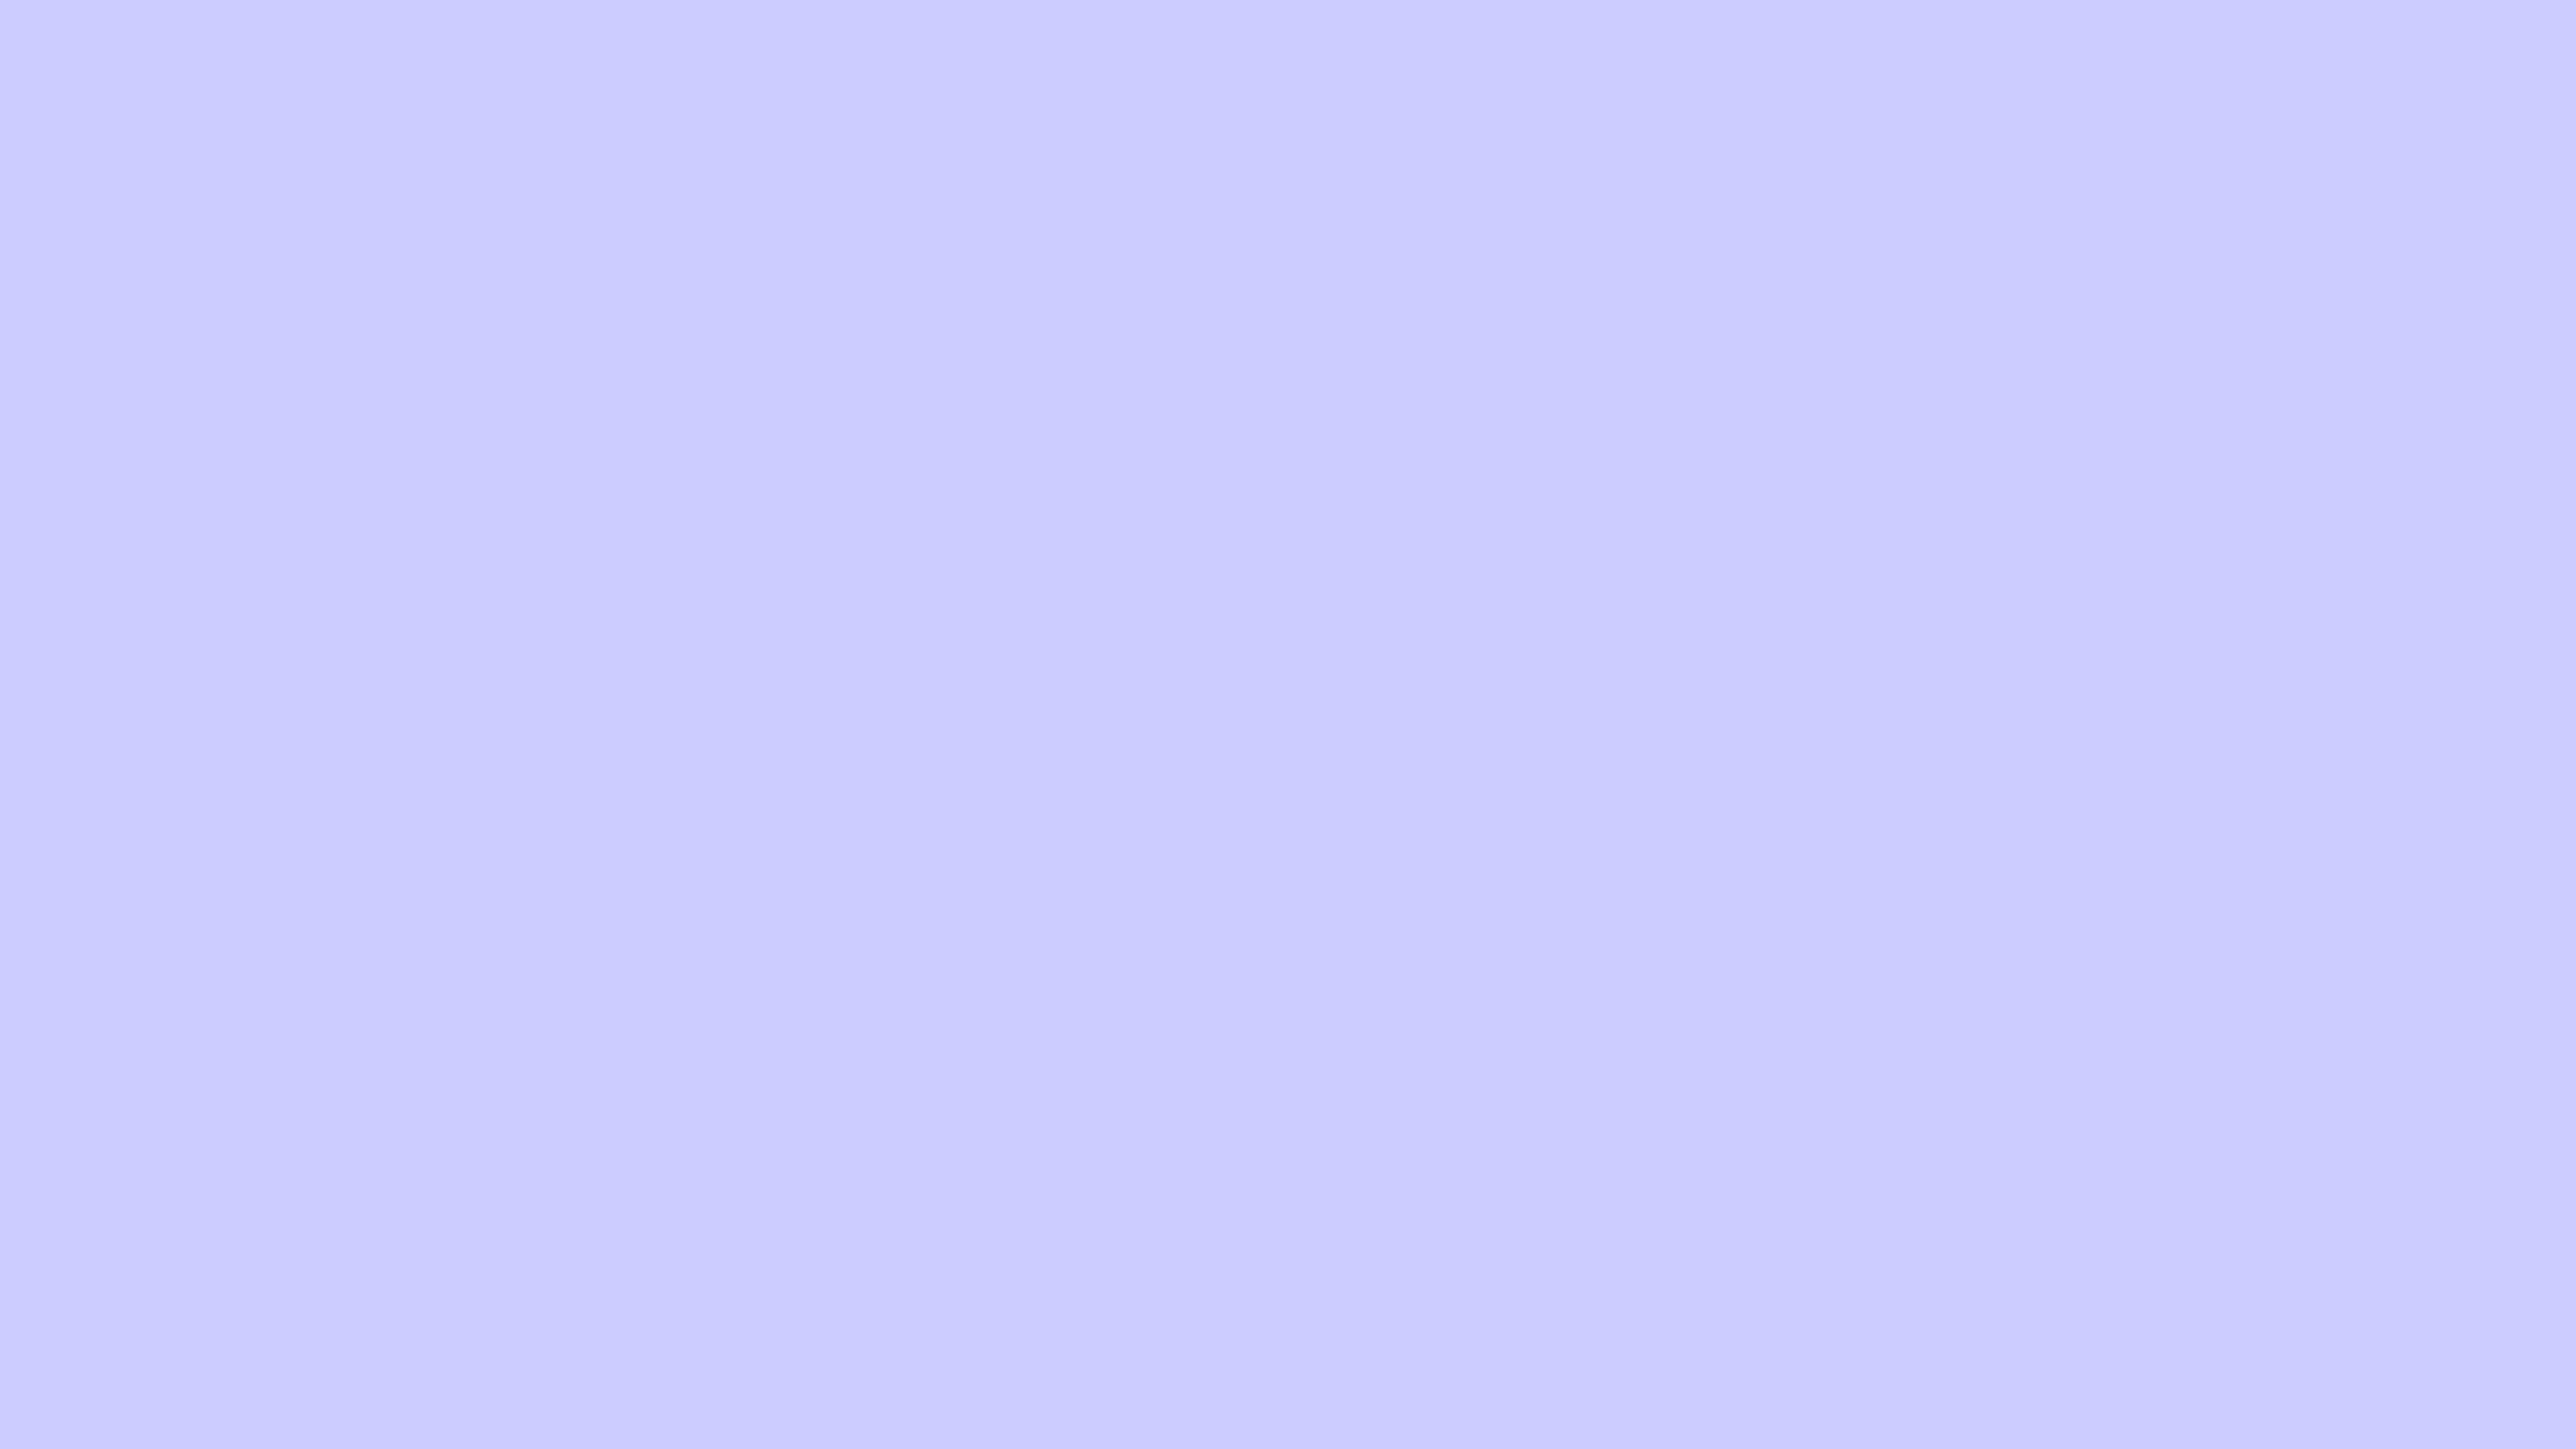 3840x2160 Periwinkle Solid Color Background